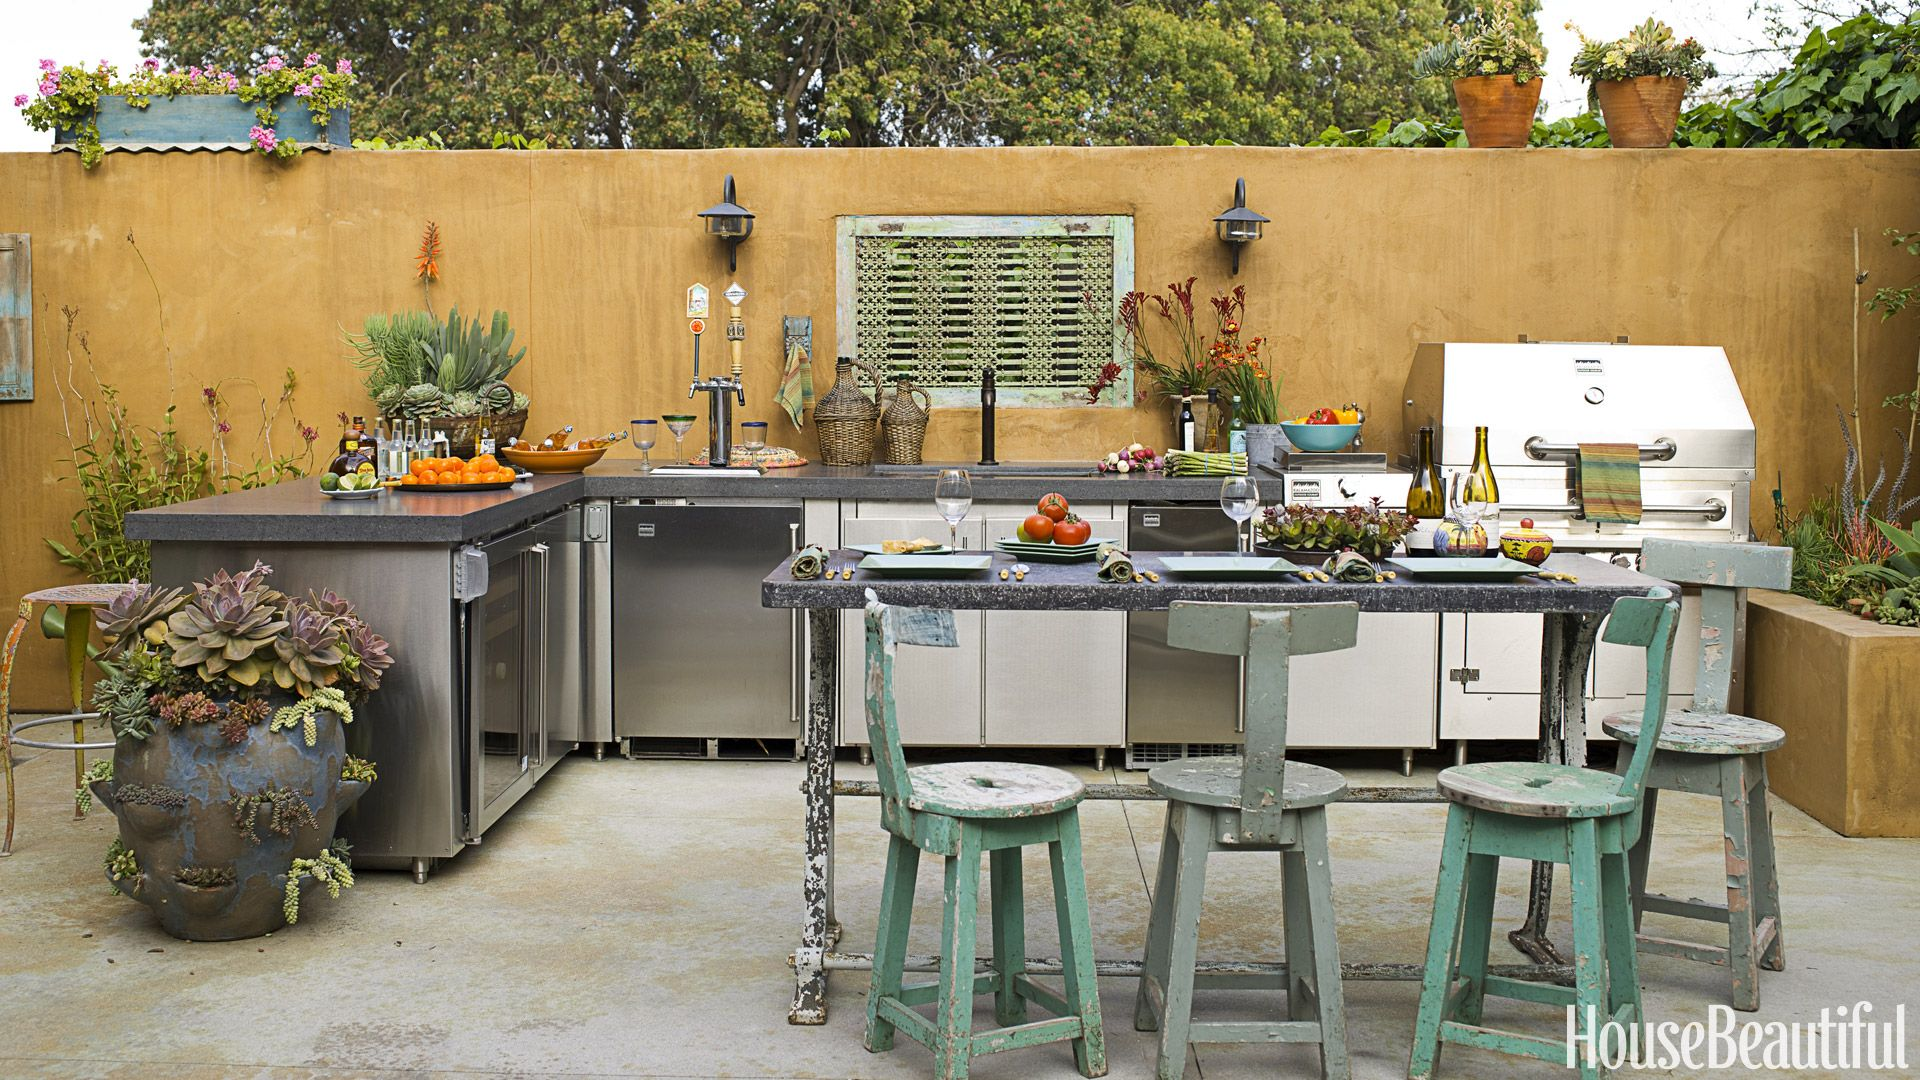 20 Outdoor Kitchen Design Ideas and